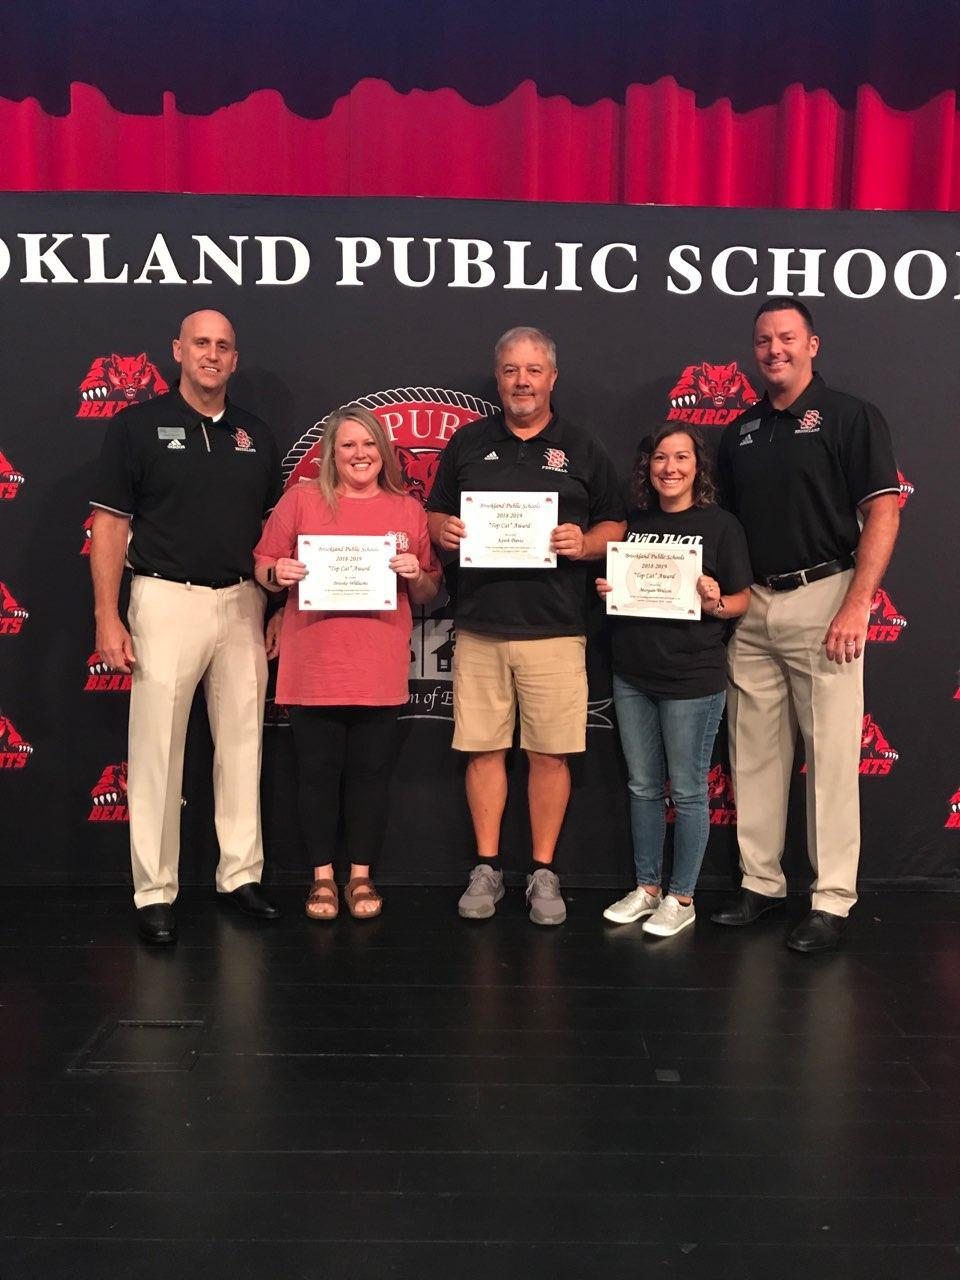 Top Cat Teacher Awards. Congratulations to Brooke Williams, Keith Davis, and Morgan Wilson.